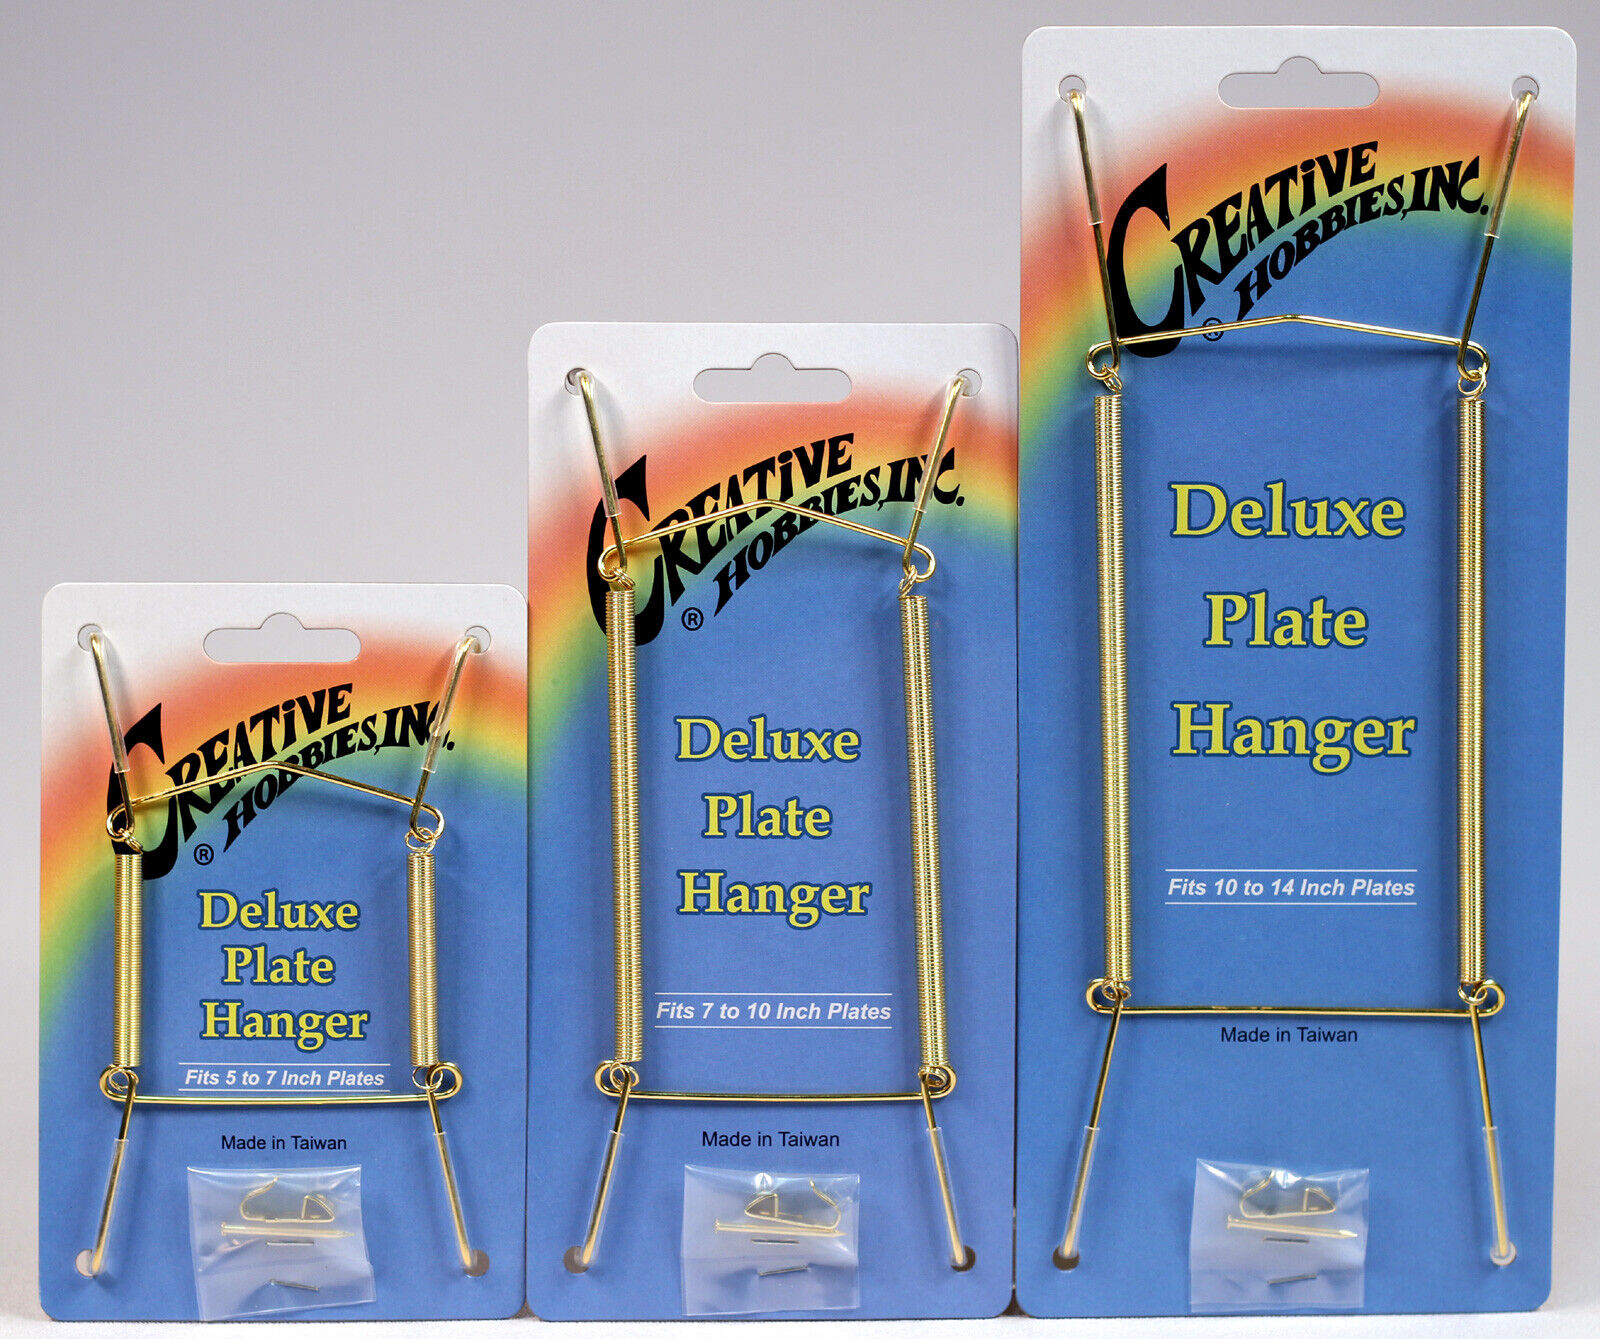 Gold Plate Display Hangers, Spring Type,Hold 5 to 14 Inch Plates -Pack of 3 Crafts